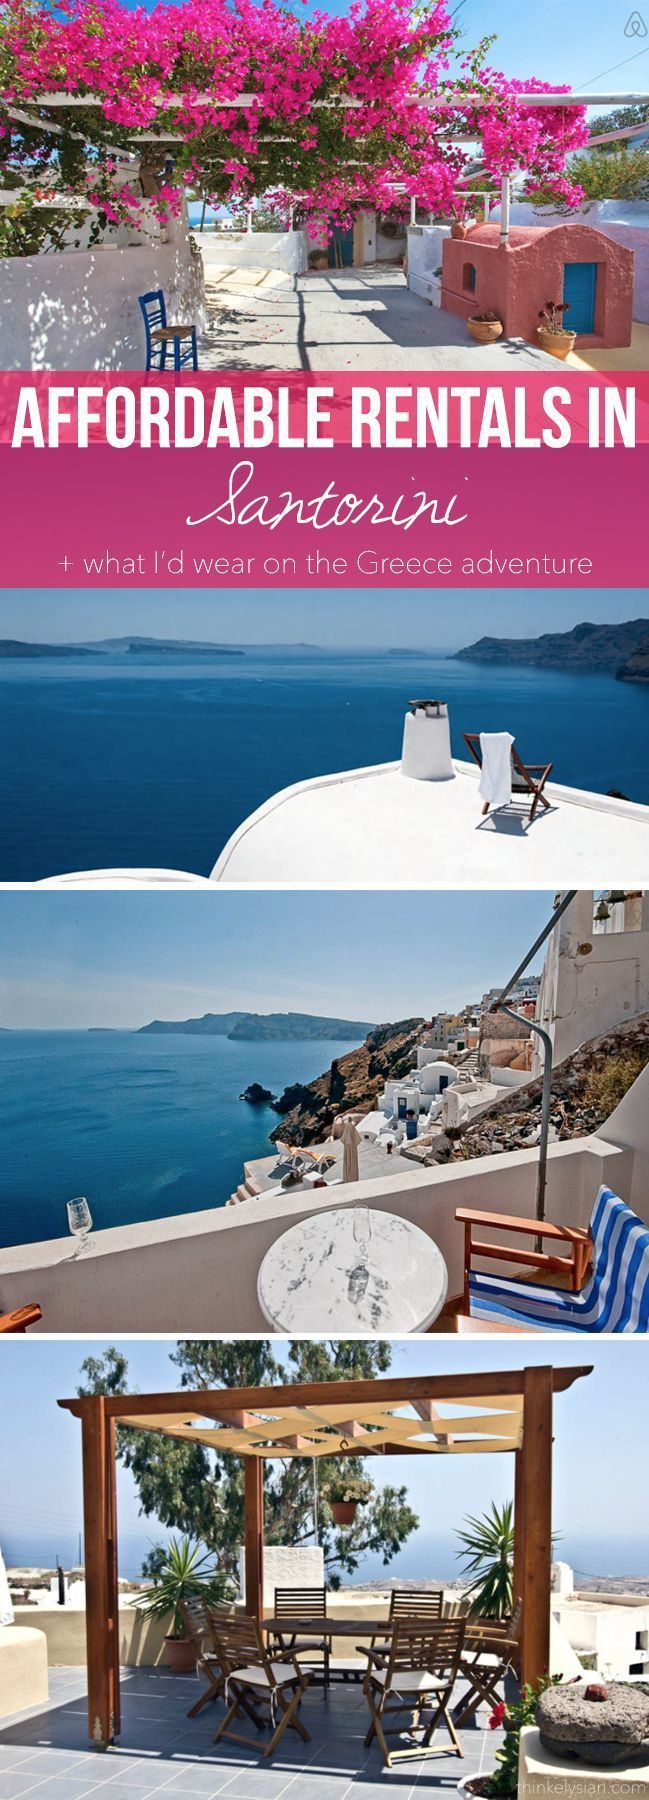 10 RIDICULOUSLY AFFORDABLE RENTALS IN SANTORINI, GREECE + WHAT ID WEAR ON THE ISLAND VACATION // thinkelysian